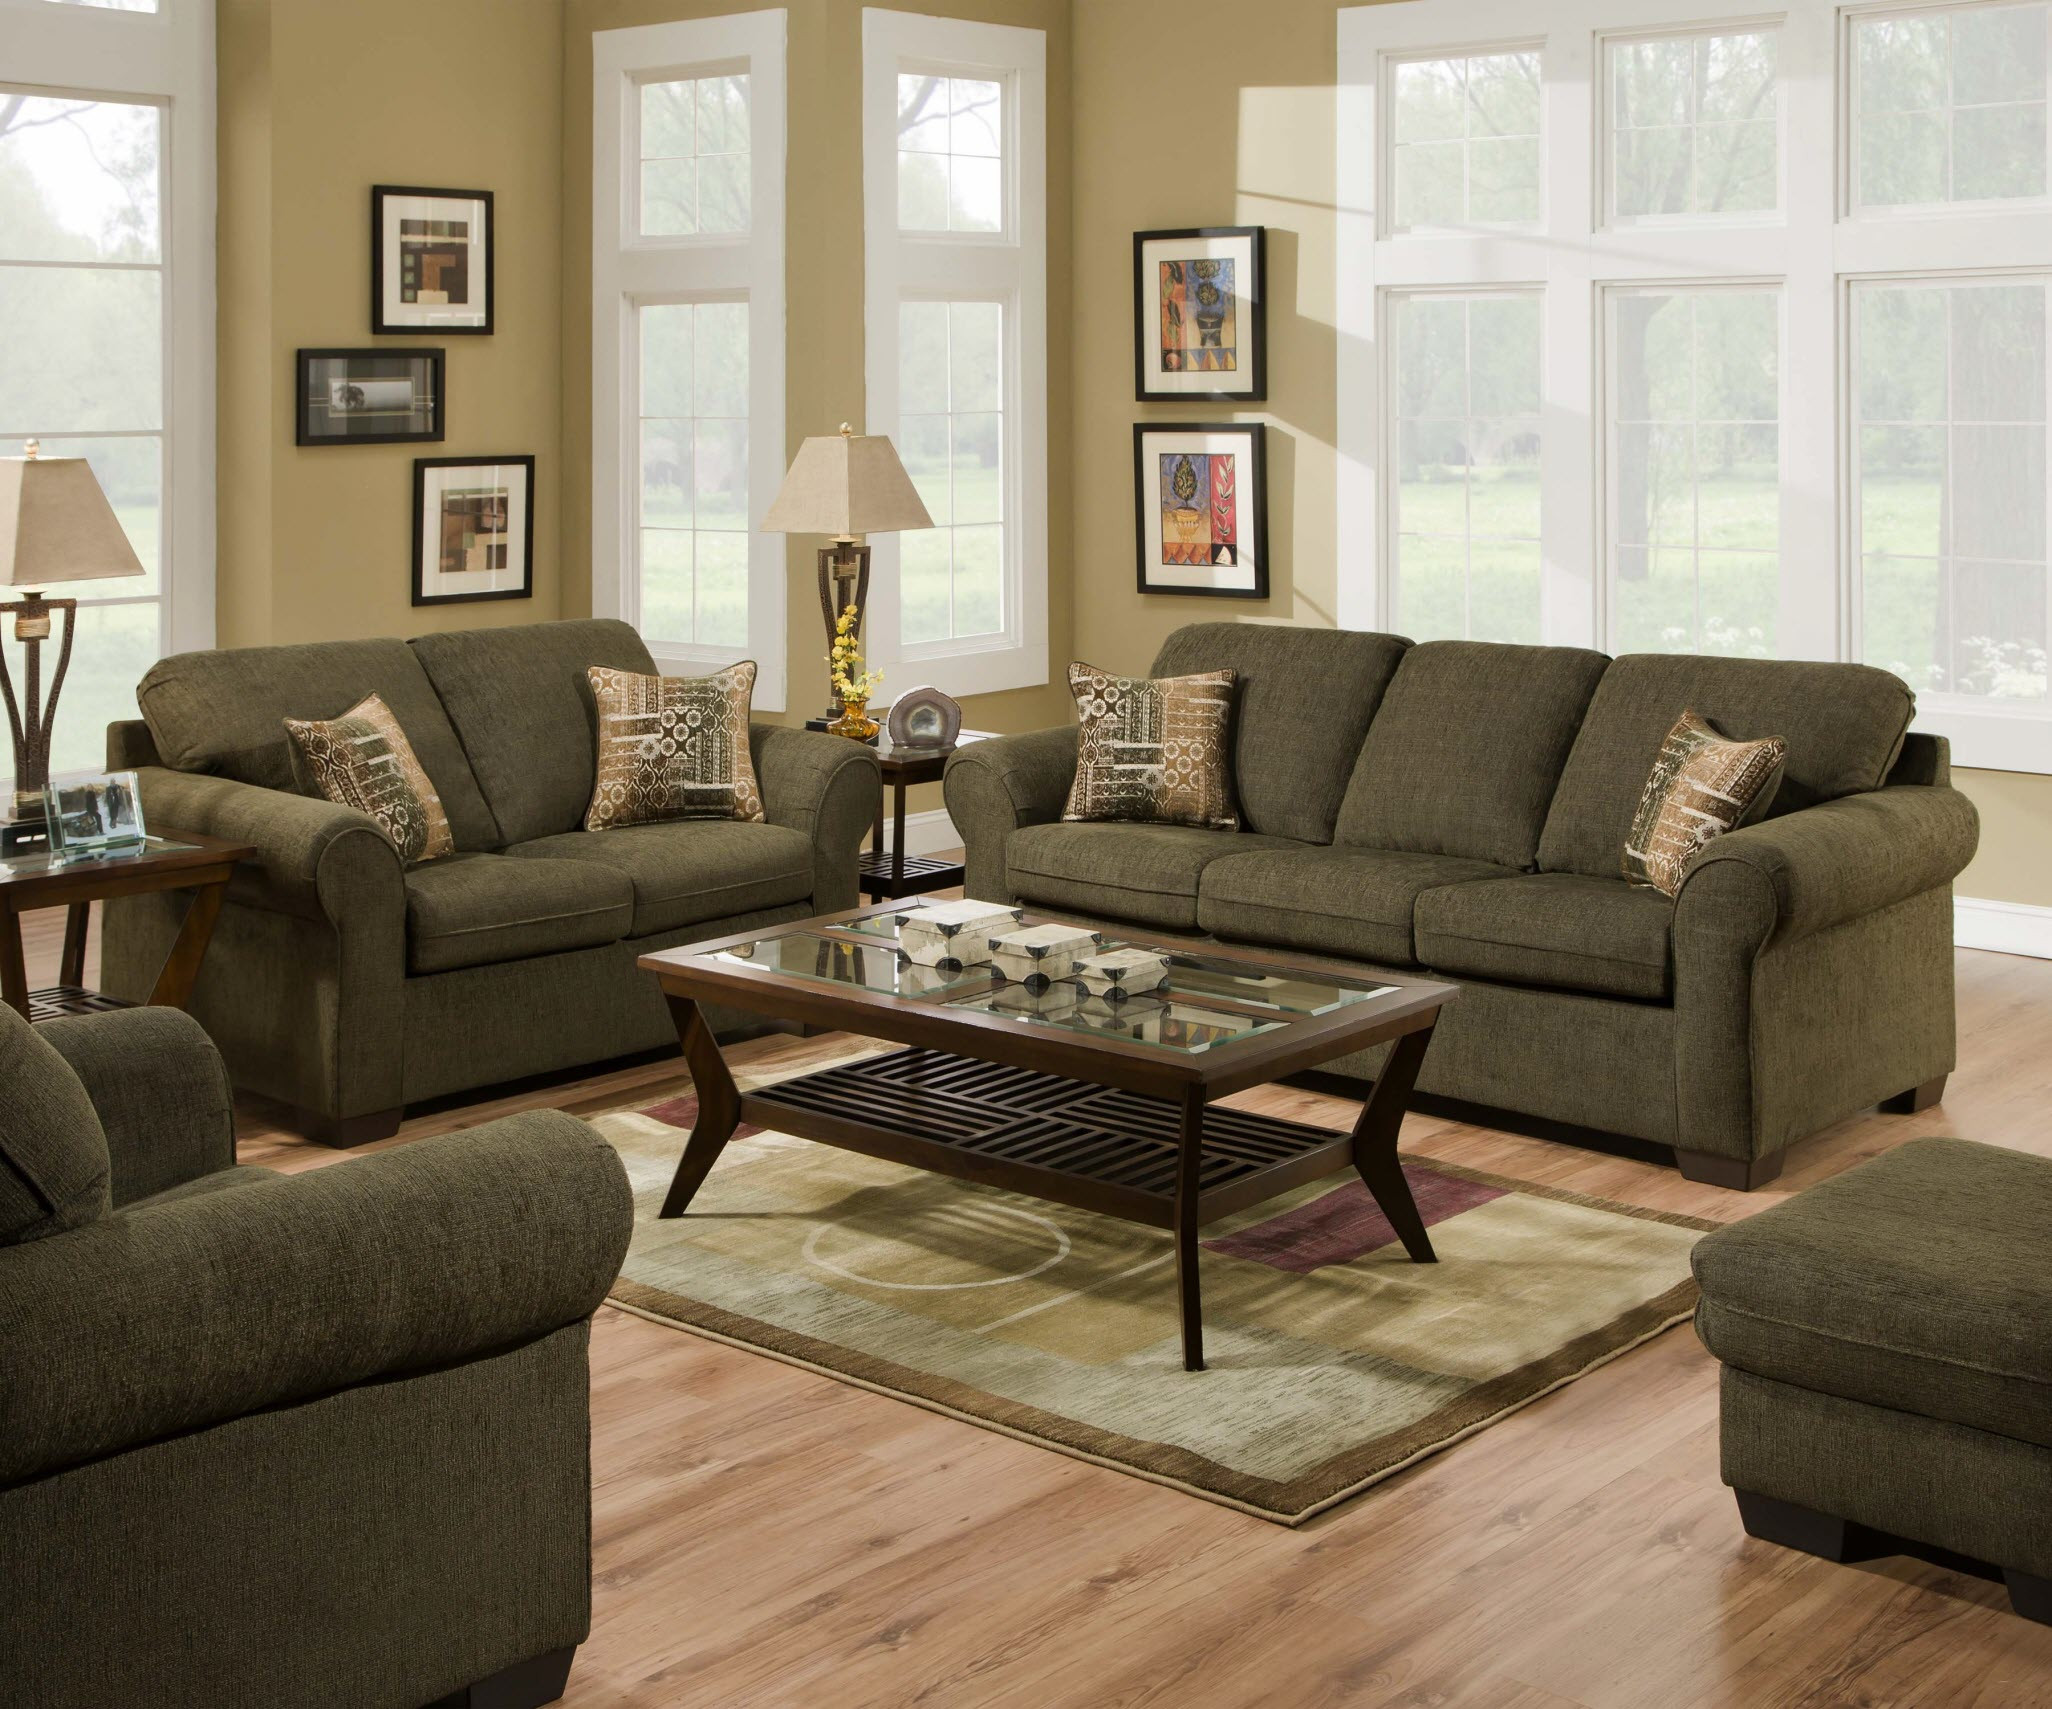 Best ideas about Cheap Living Room Furniture . Save or Pin Stunning Living Room Furniture Sets For Cheap s Now.